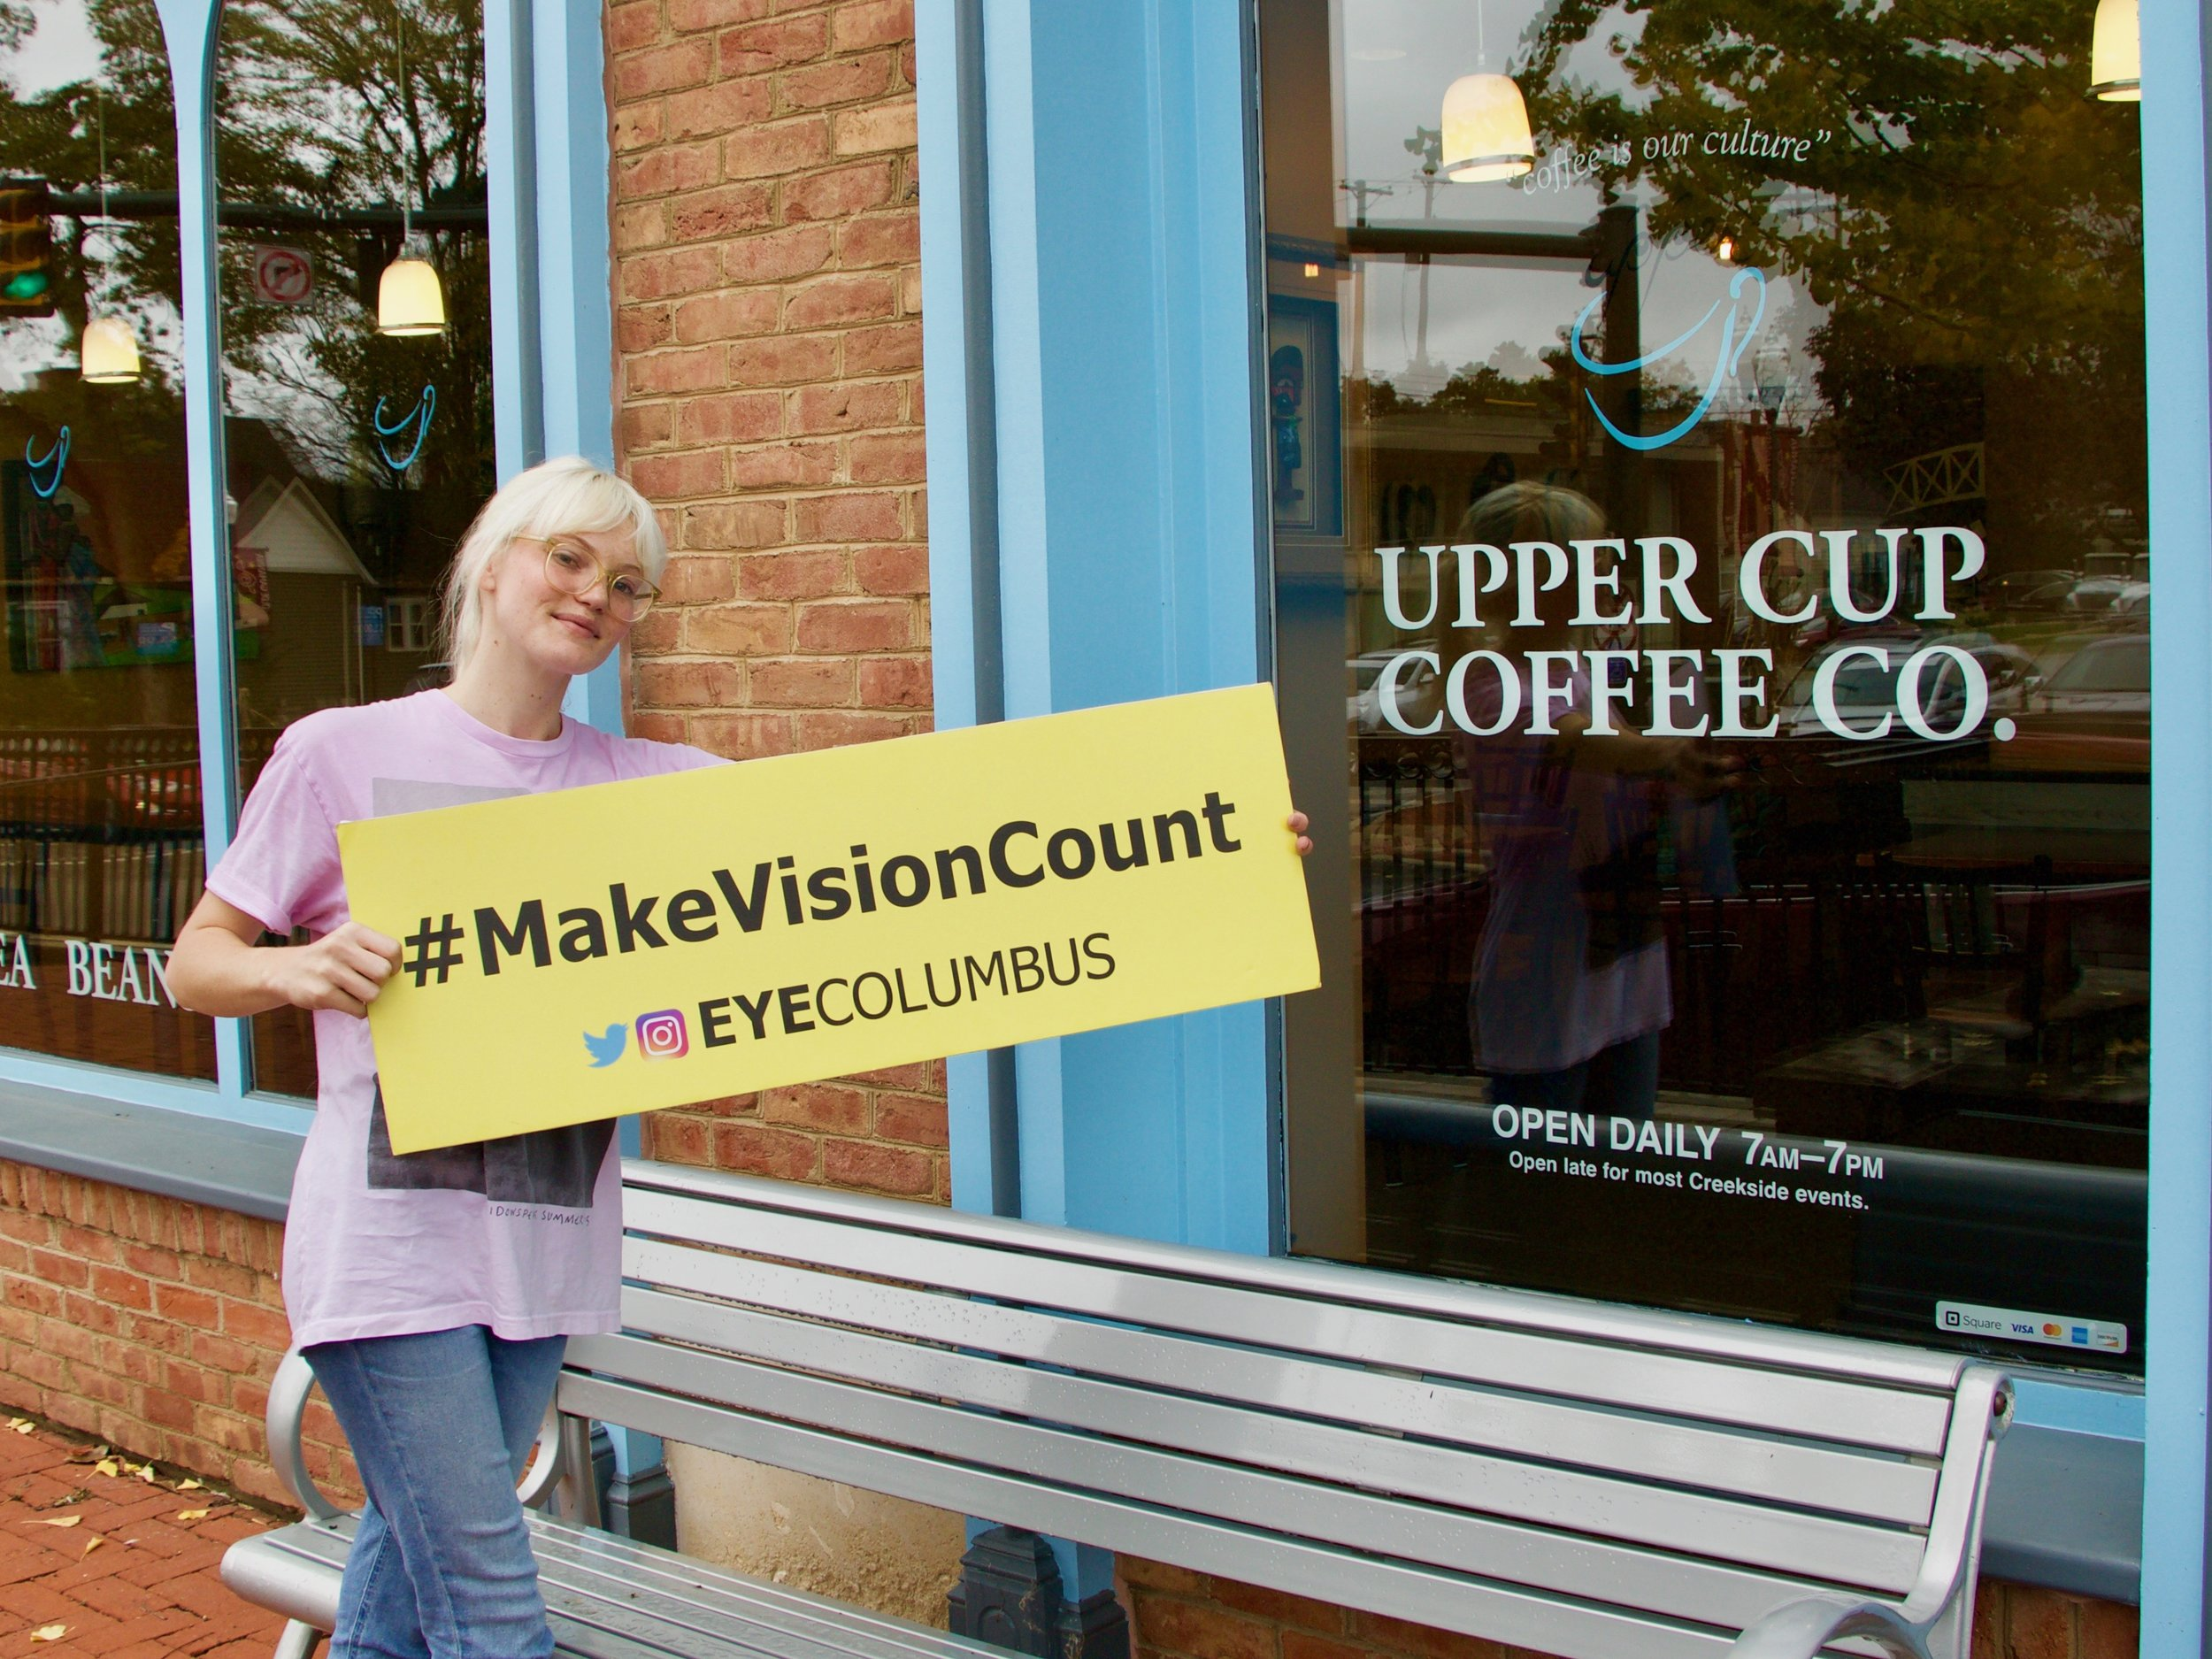 Upper Cup Coffee Co. |  @uppercup